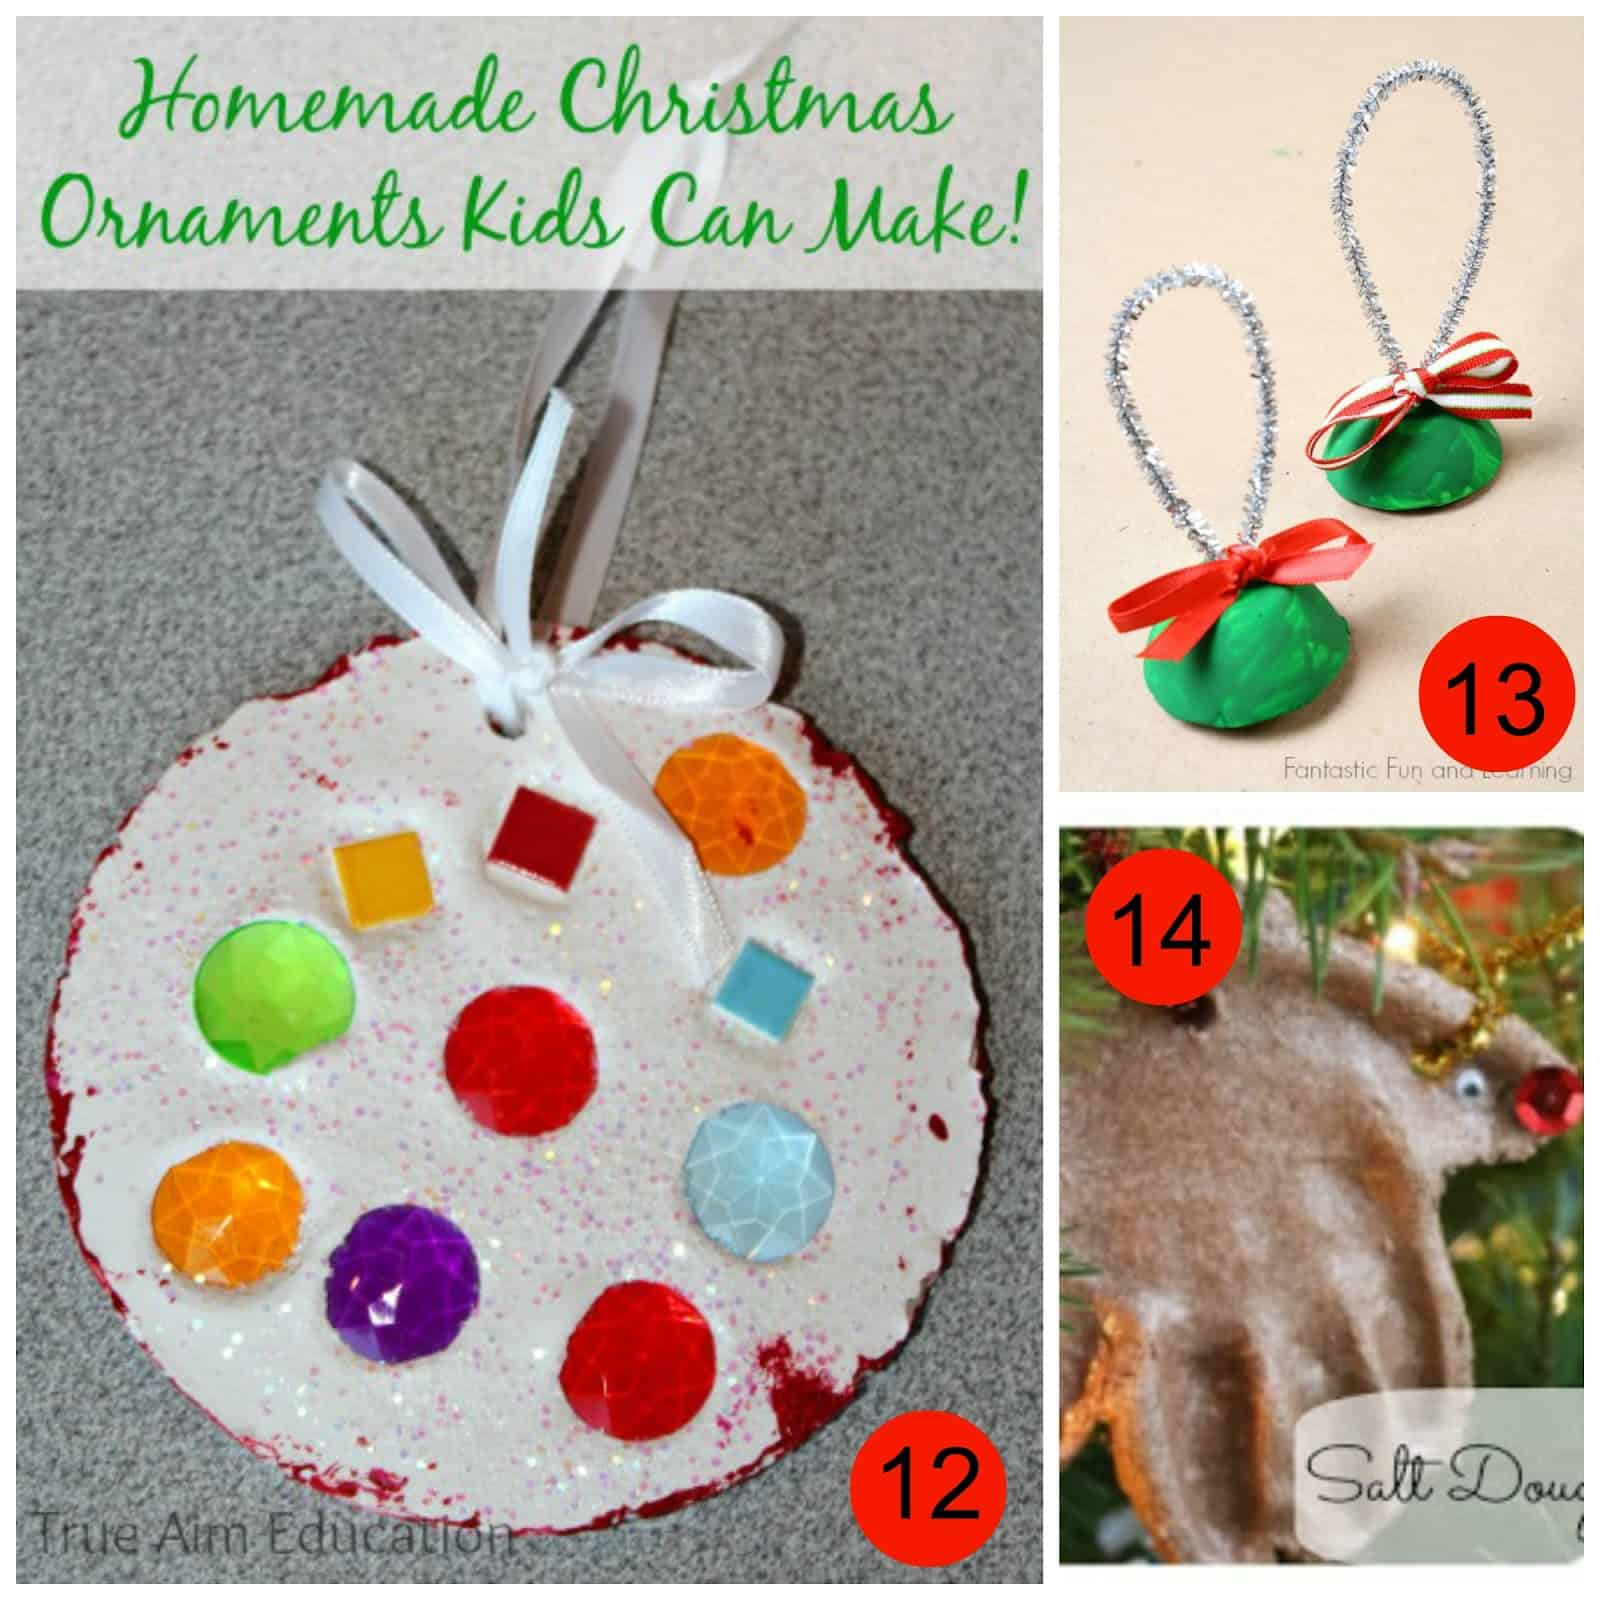 Lovely Christmas Ornaments For Kids To Make In School Part - 4: Homemade Christmas Ornaments Kids Can Make From True Aim 13. Egg Carton  Bell Christmas Craft From Fantastic Fun And Learning